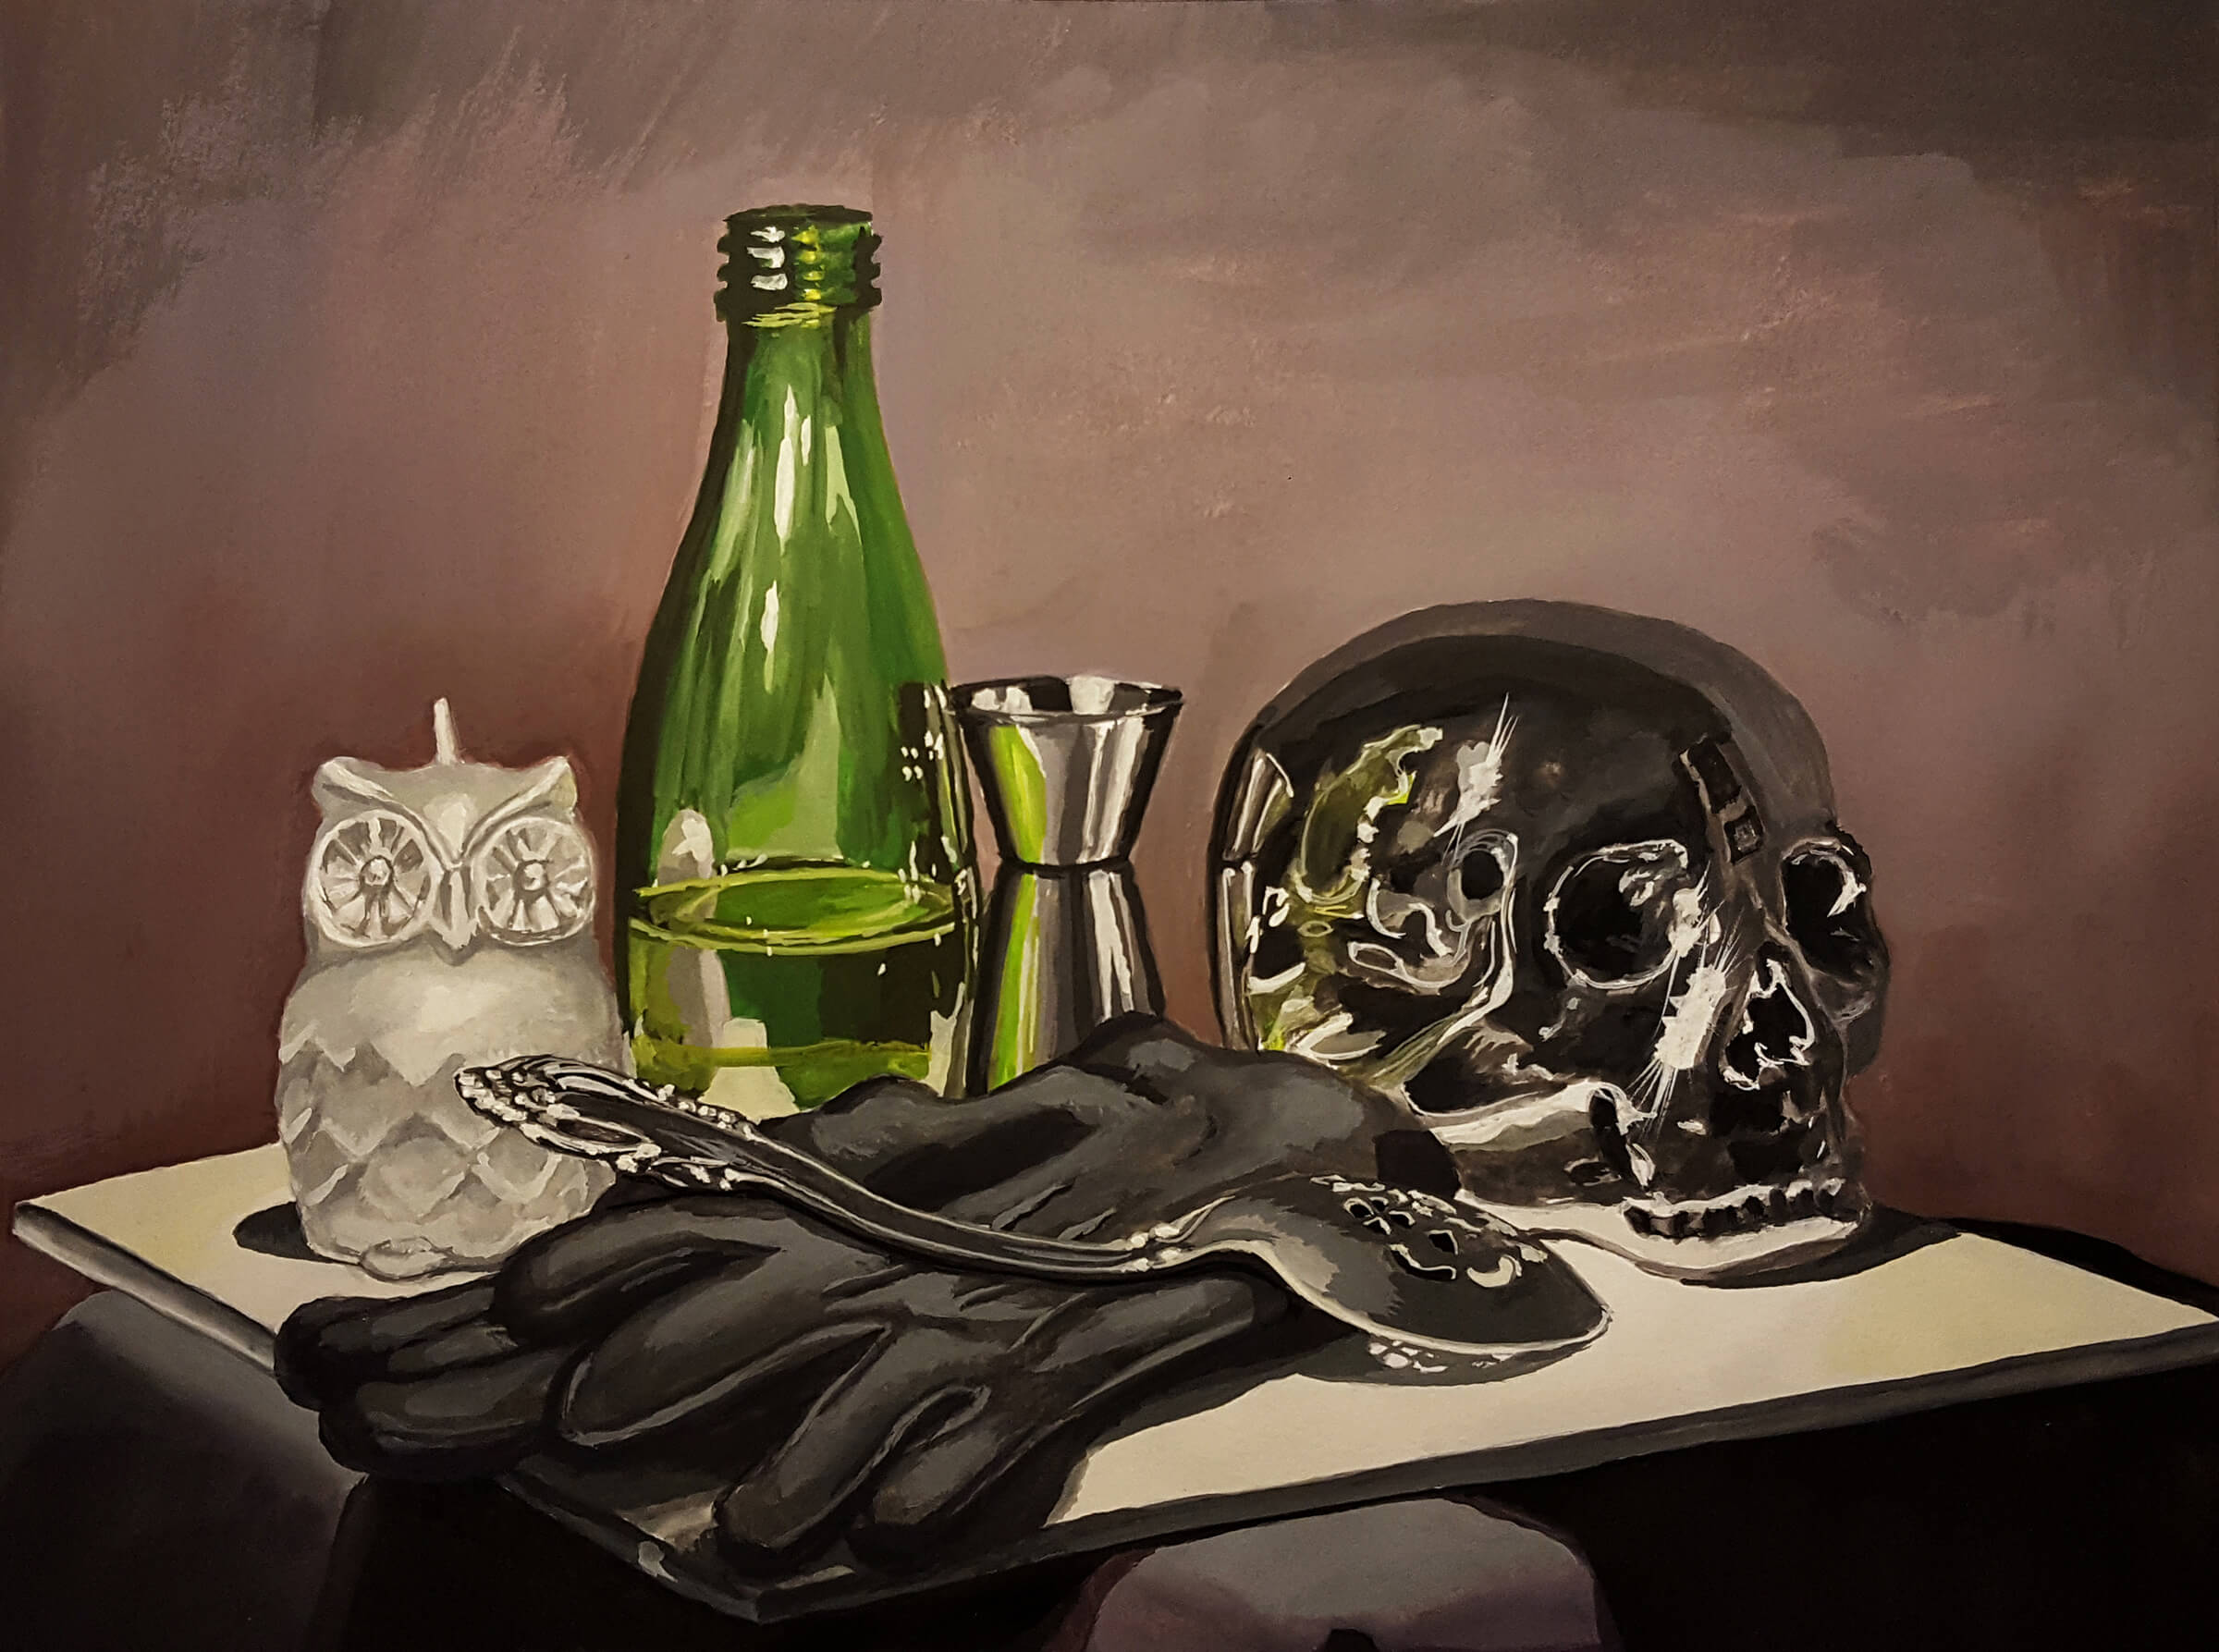 still-life traditional painting of an owl-shaped candle, green bottle, human skull, black gloves, and a spoon